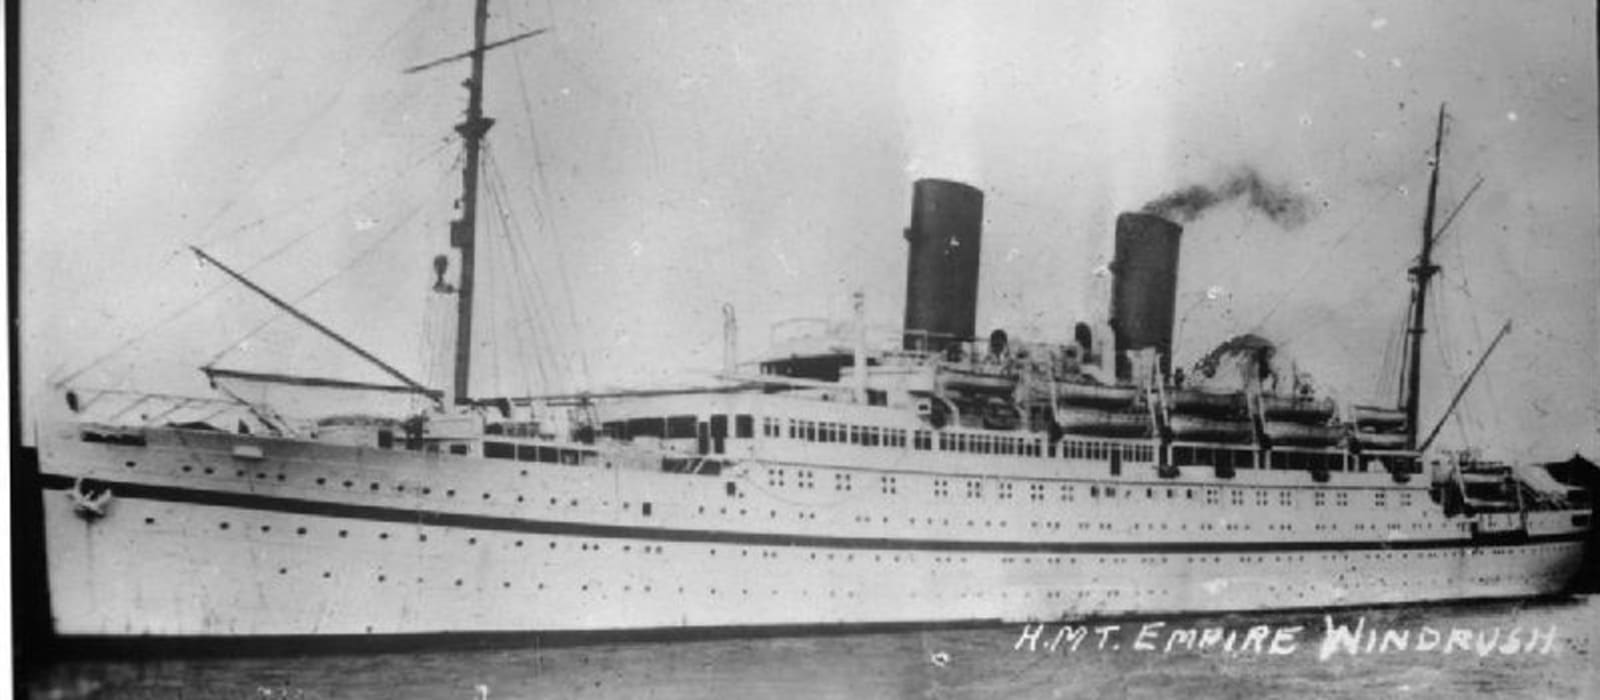 A black and white photograph of the ship the Empire Windrush